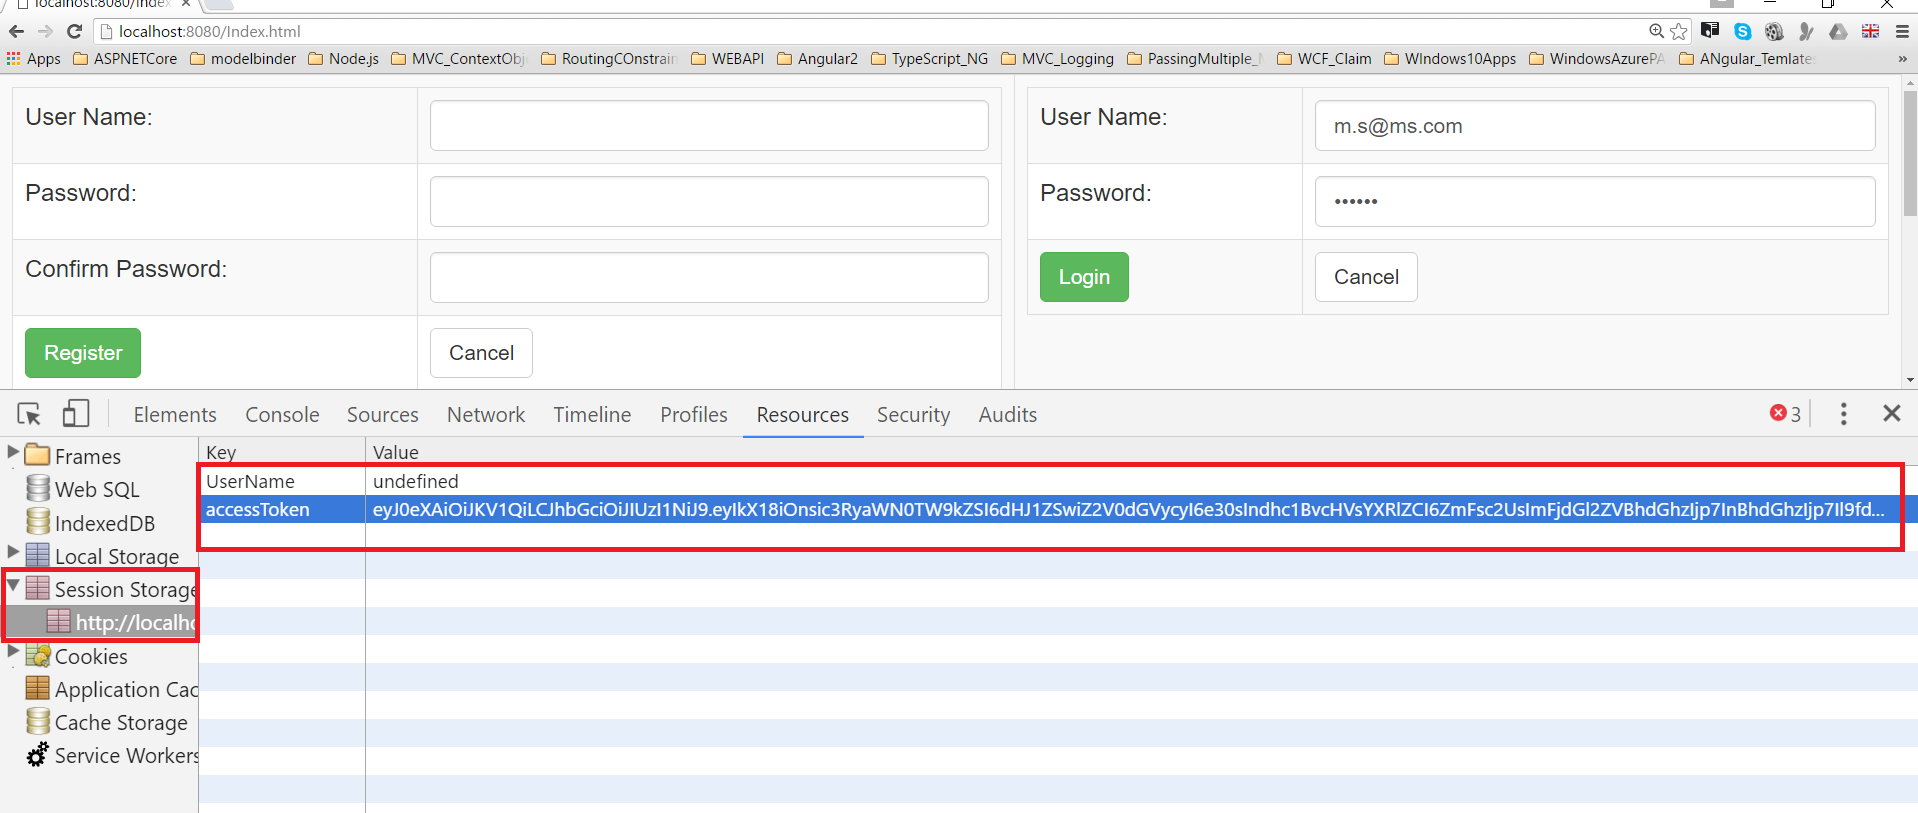 Token Based authentication in Node js using JSON Web Tokens